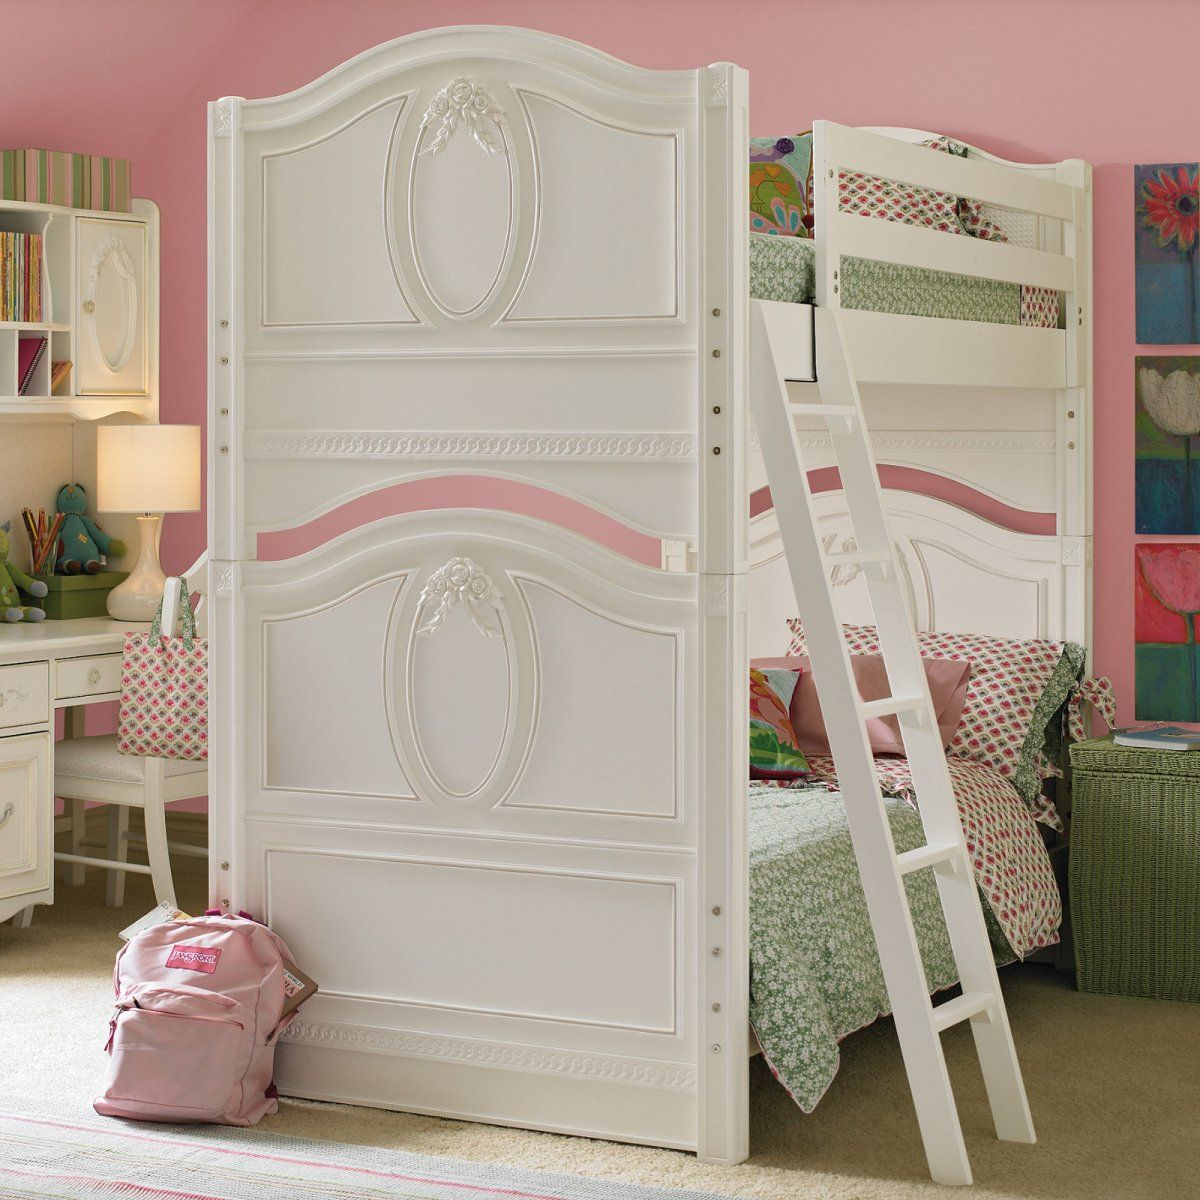 Bedroom Decor Styles Toddler Girl Bedroom Paint Ideas Cool Bedroom Wall Art Ideas Bunk Bed Bedroom Sets: Beautiful Wondrous Pink And White Bunk Bed Idea With